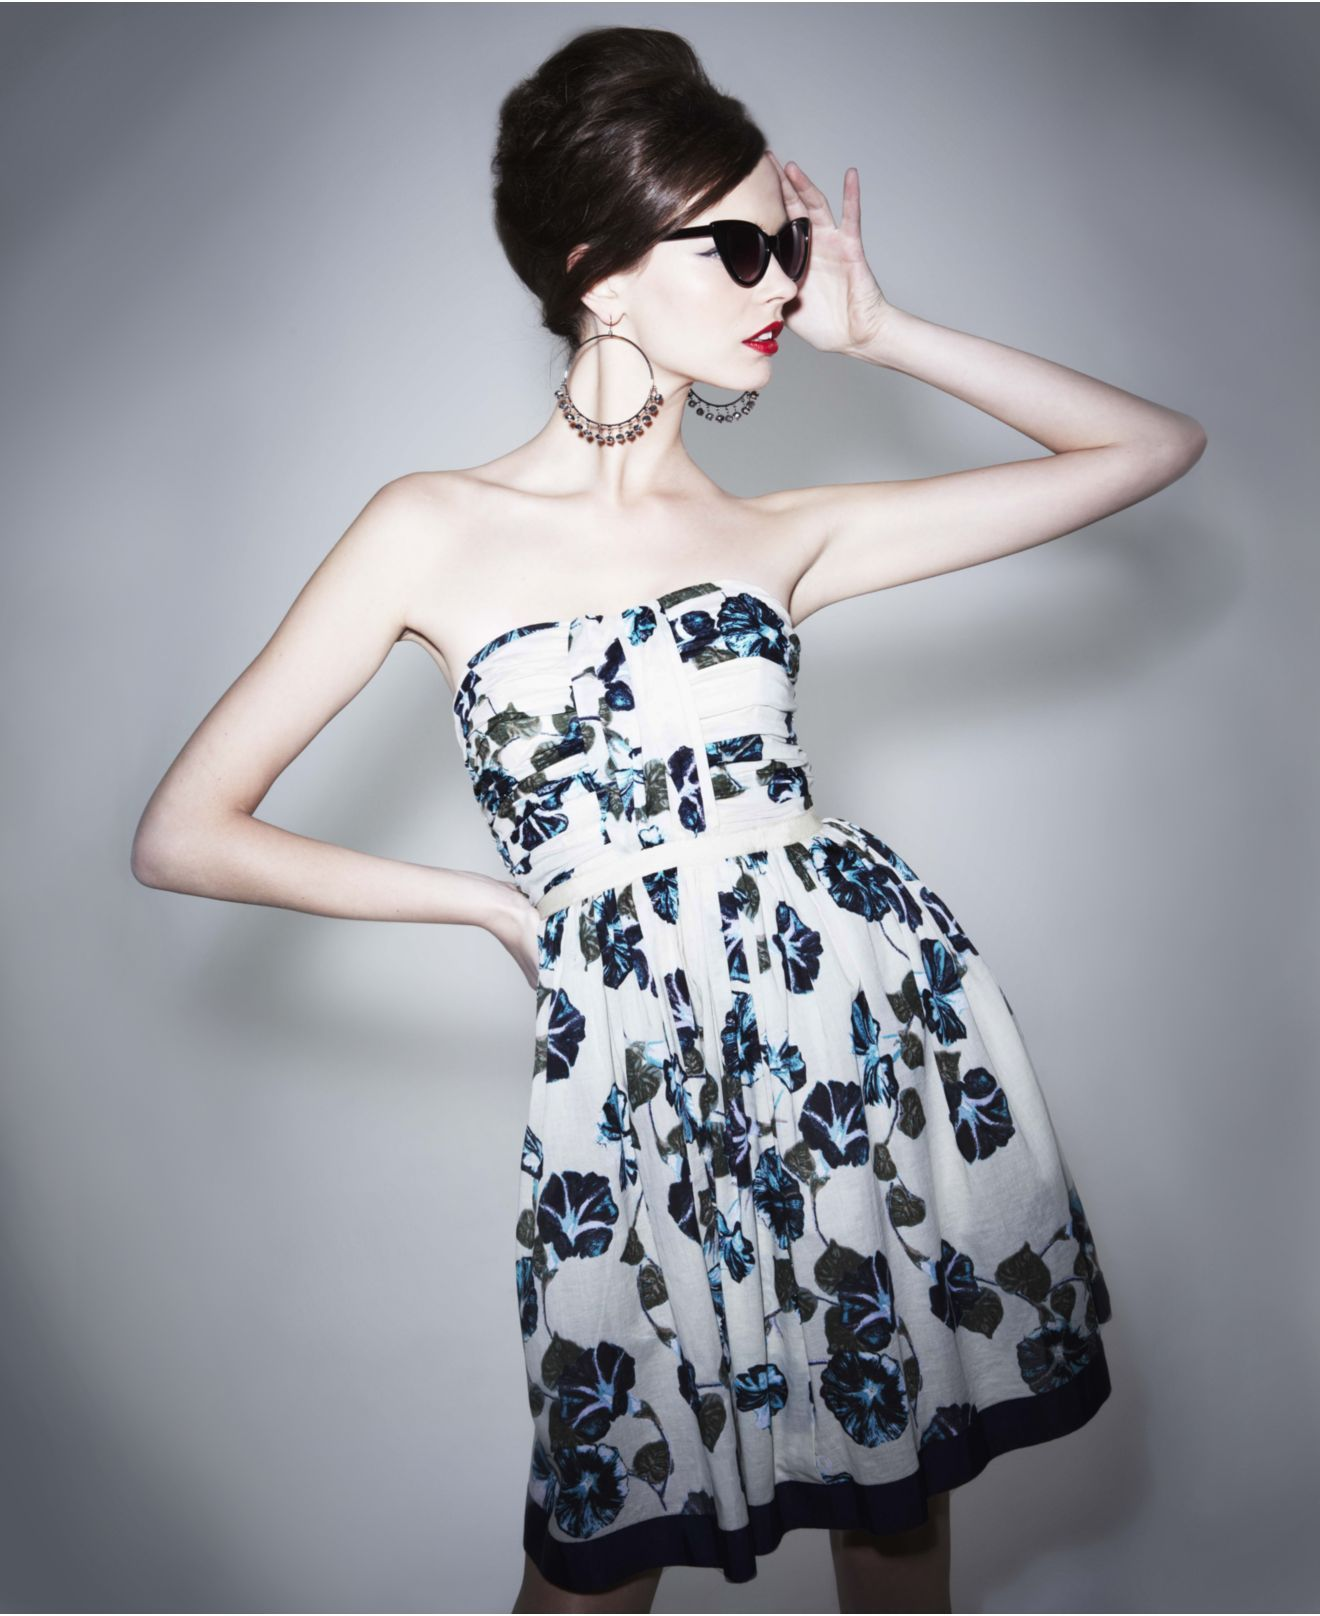 Alberta Ferretti for Impulse Dress, Strapless Sweetheart Pleated Floral Printed A Line